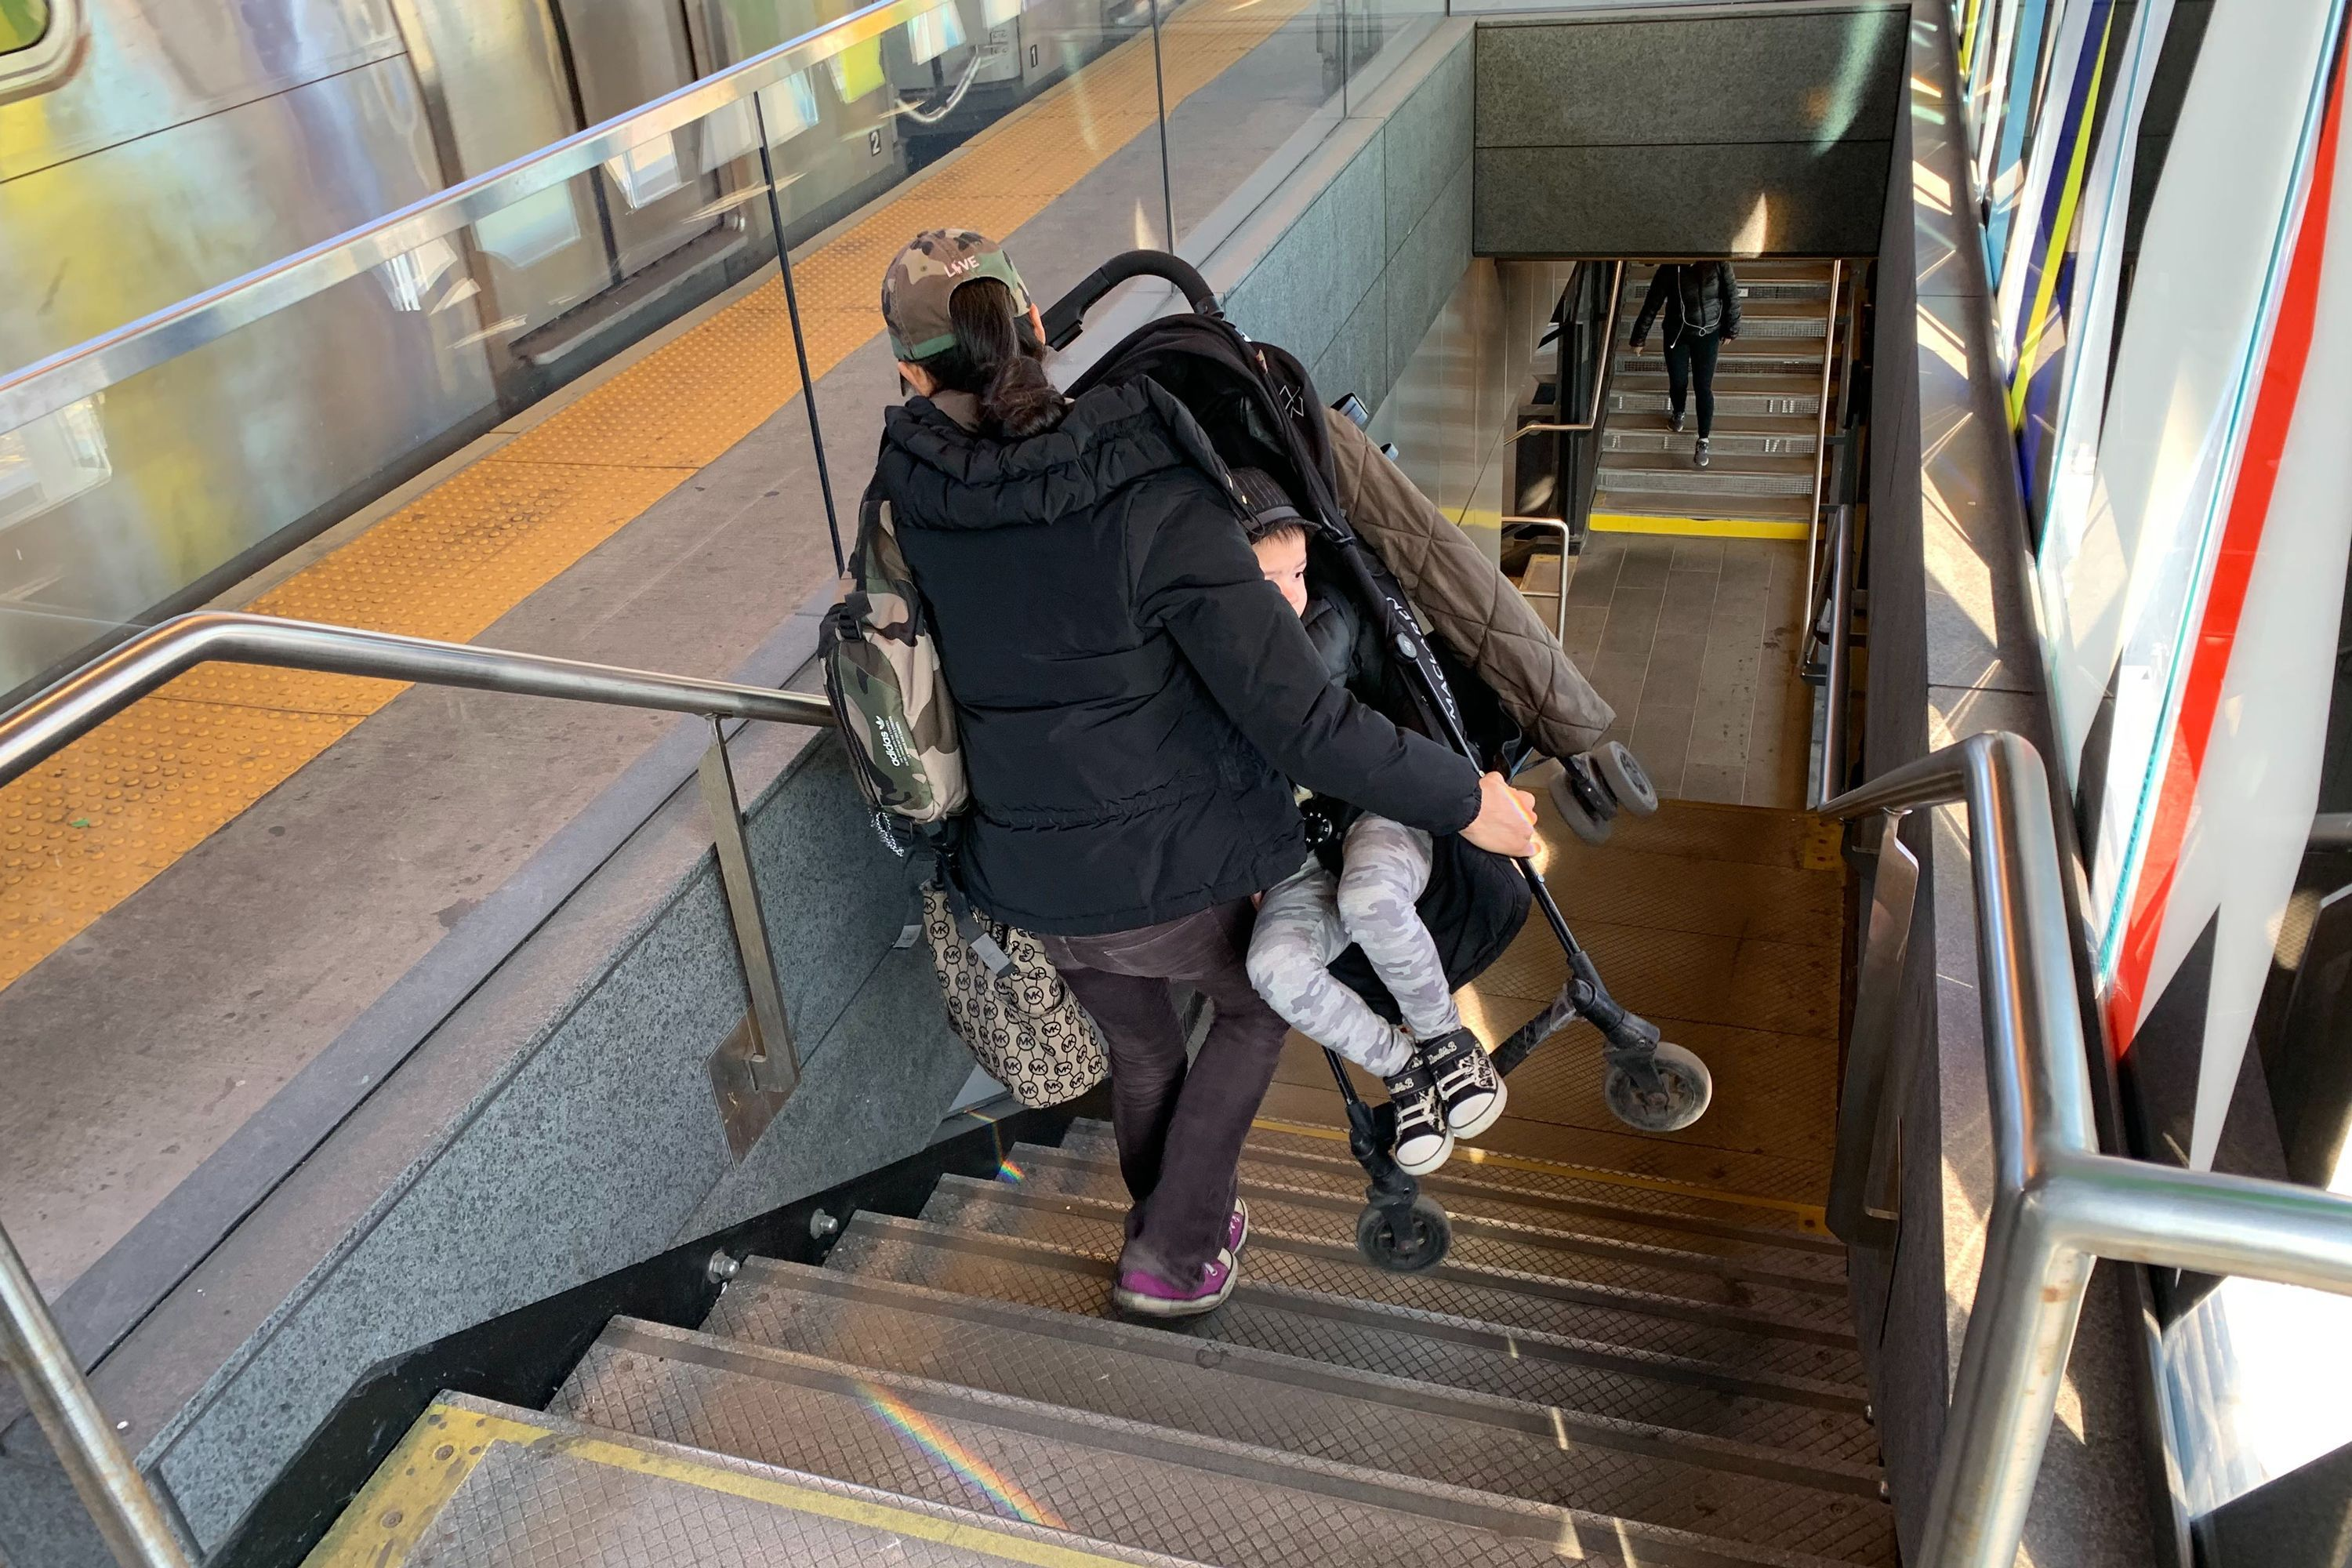 A woman carries a stroller down the steps at the 39 Avenue stop in Queens.